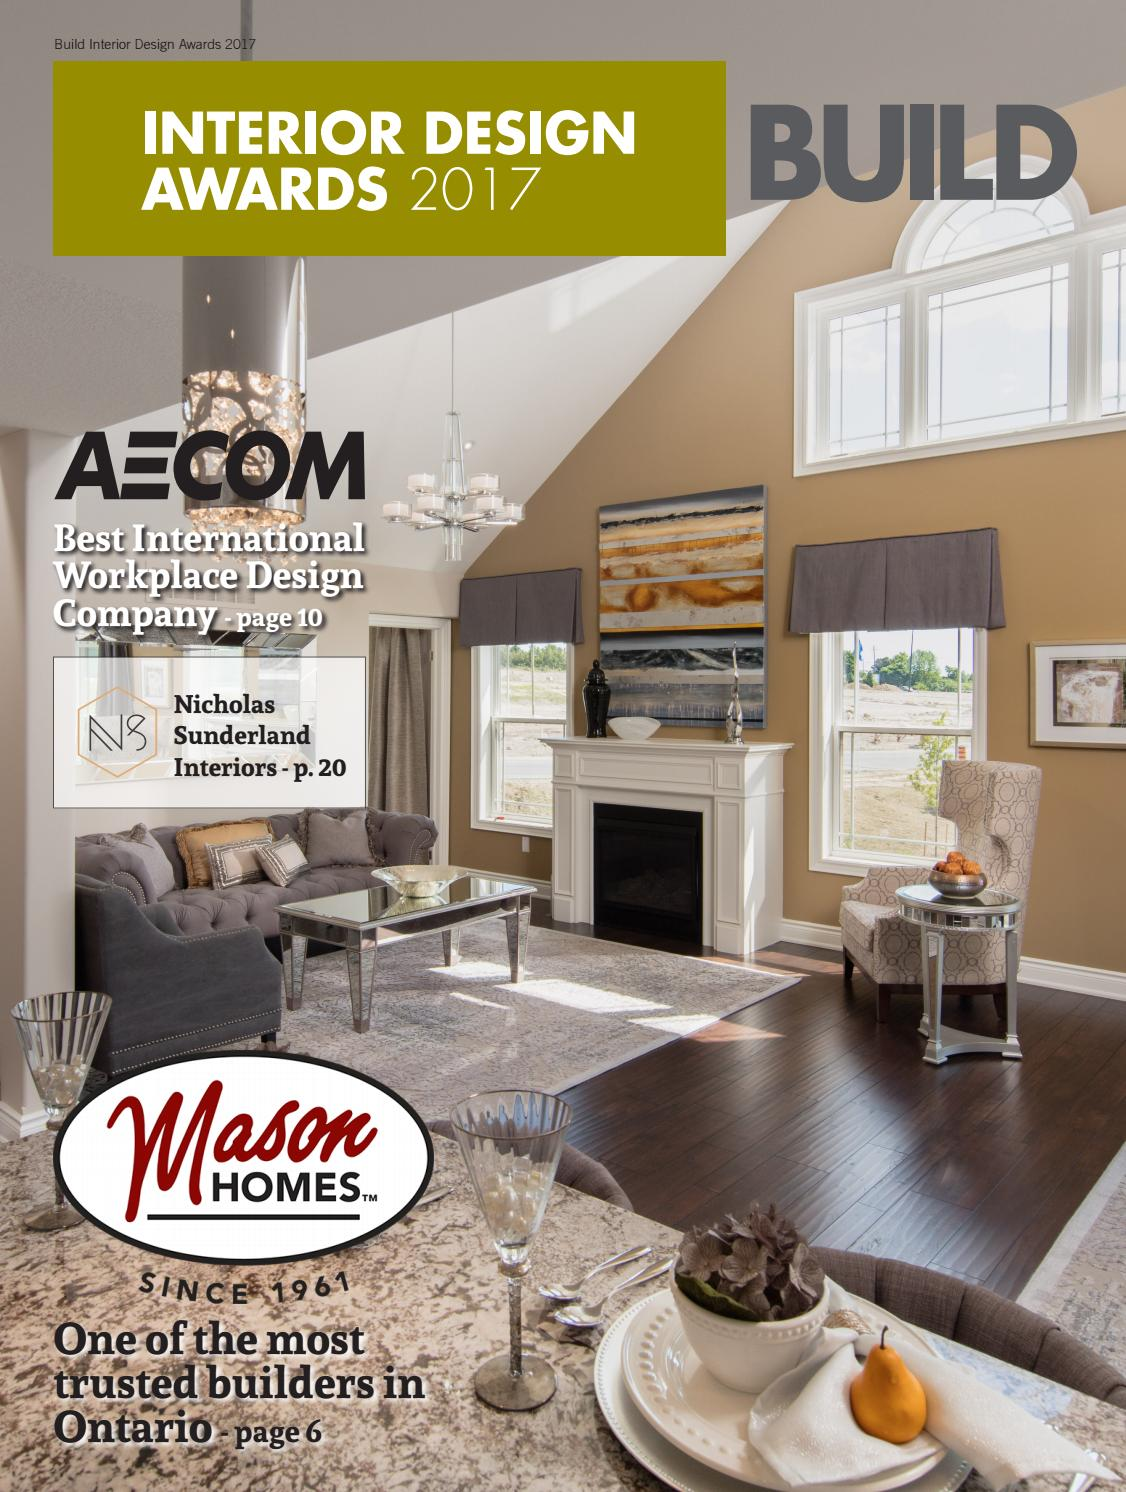 Build interior design awards 2017 by ai global media issuu